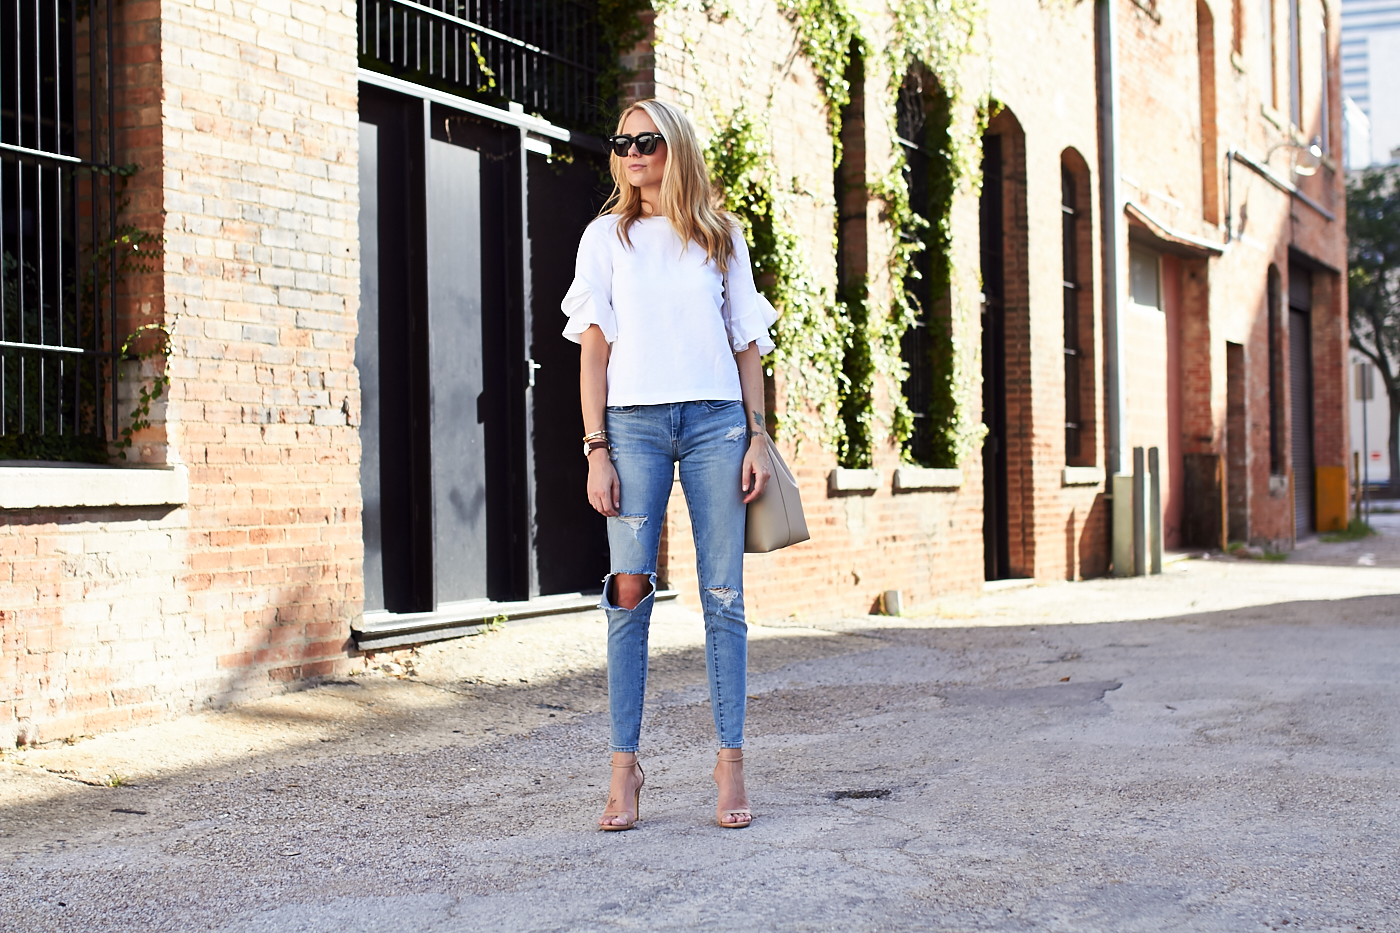 fashion-jackson-distressed-skinny-jeans-nordstrom-anniversary-sale-white-ruffle-sleeve-top